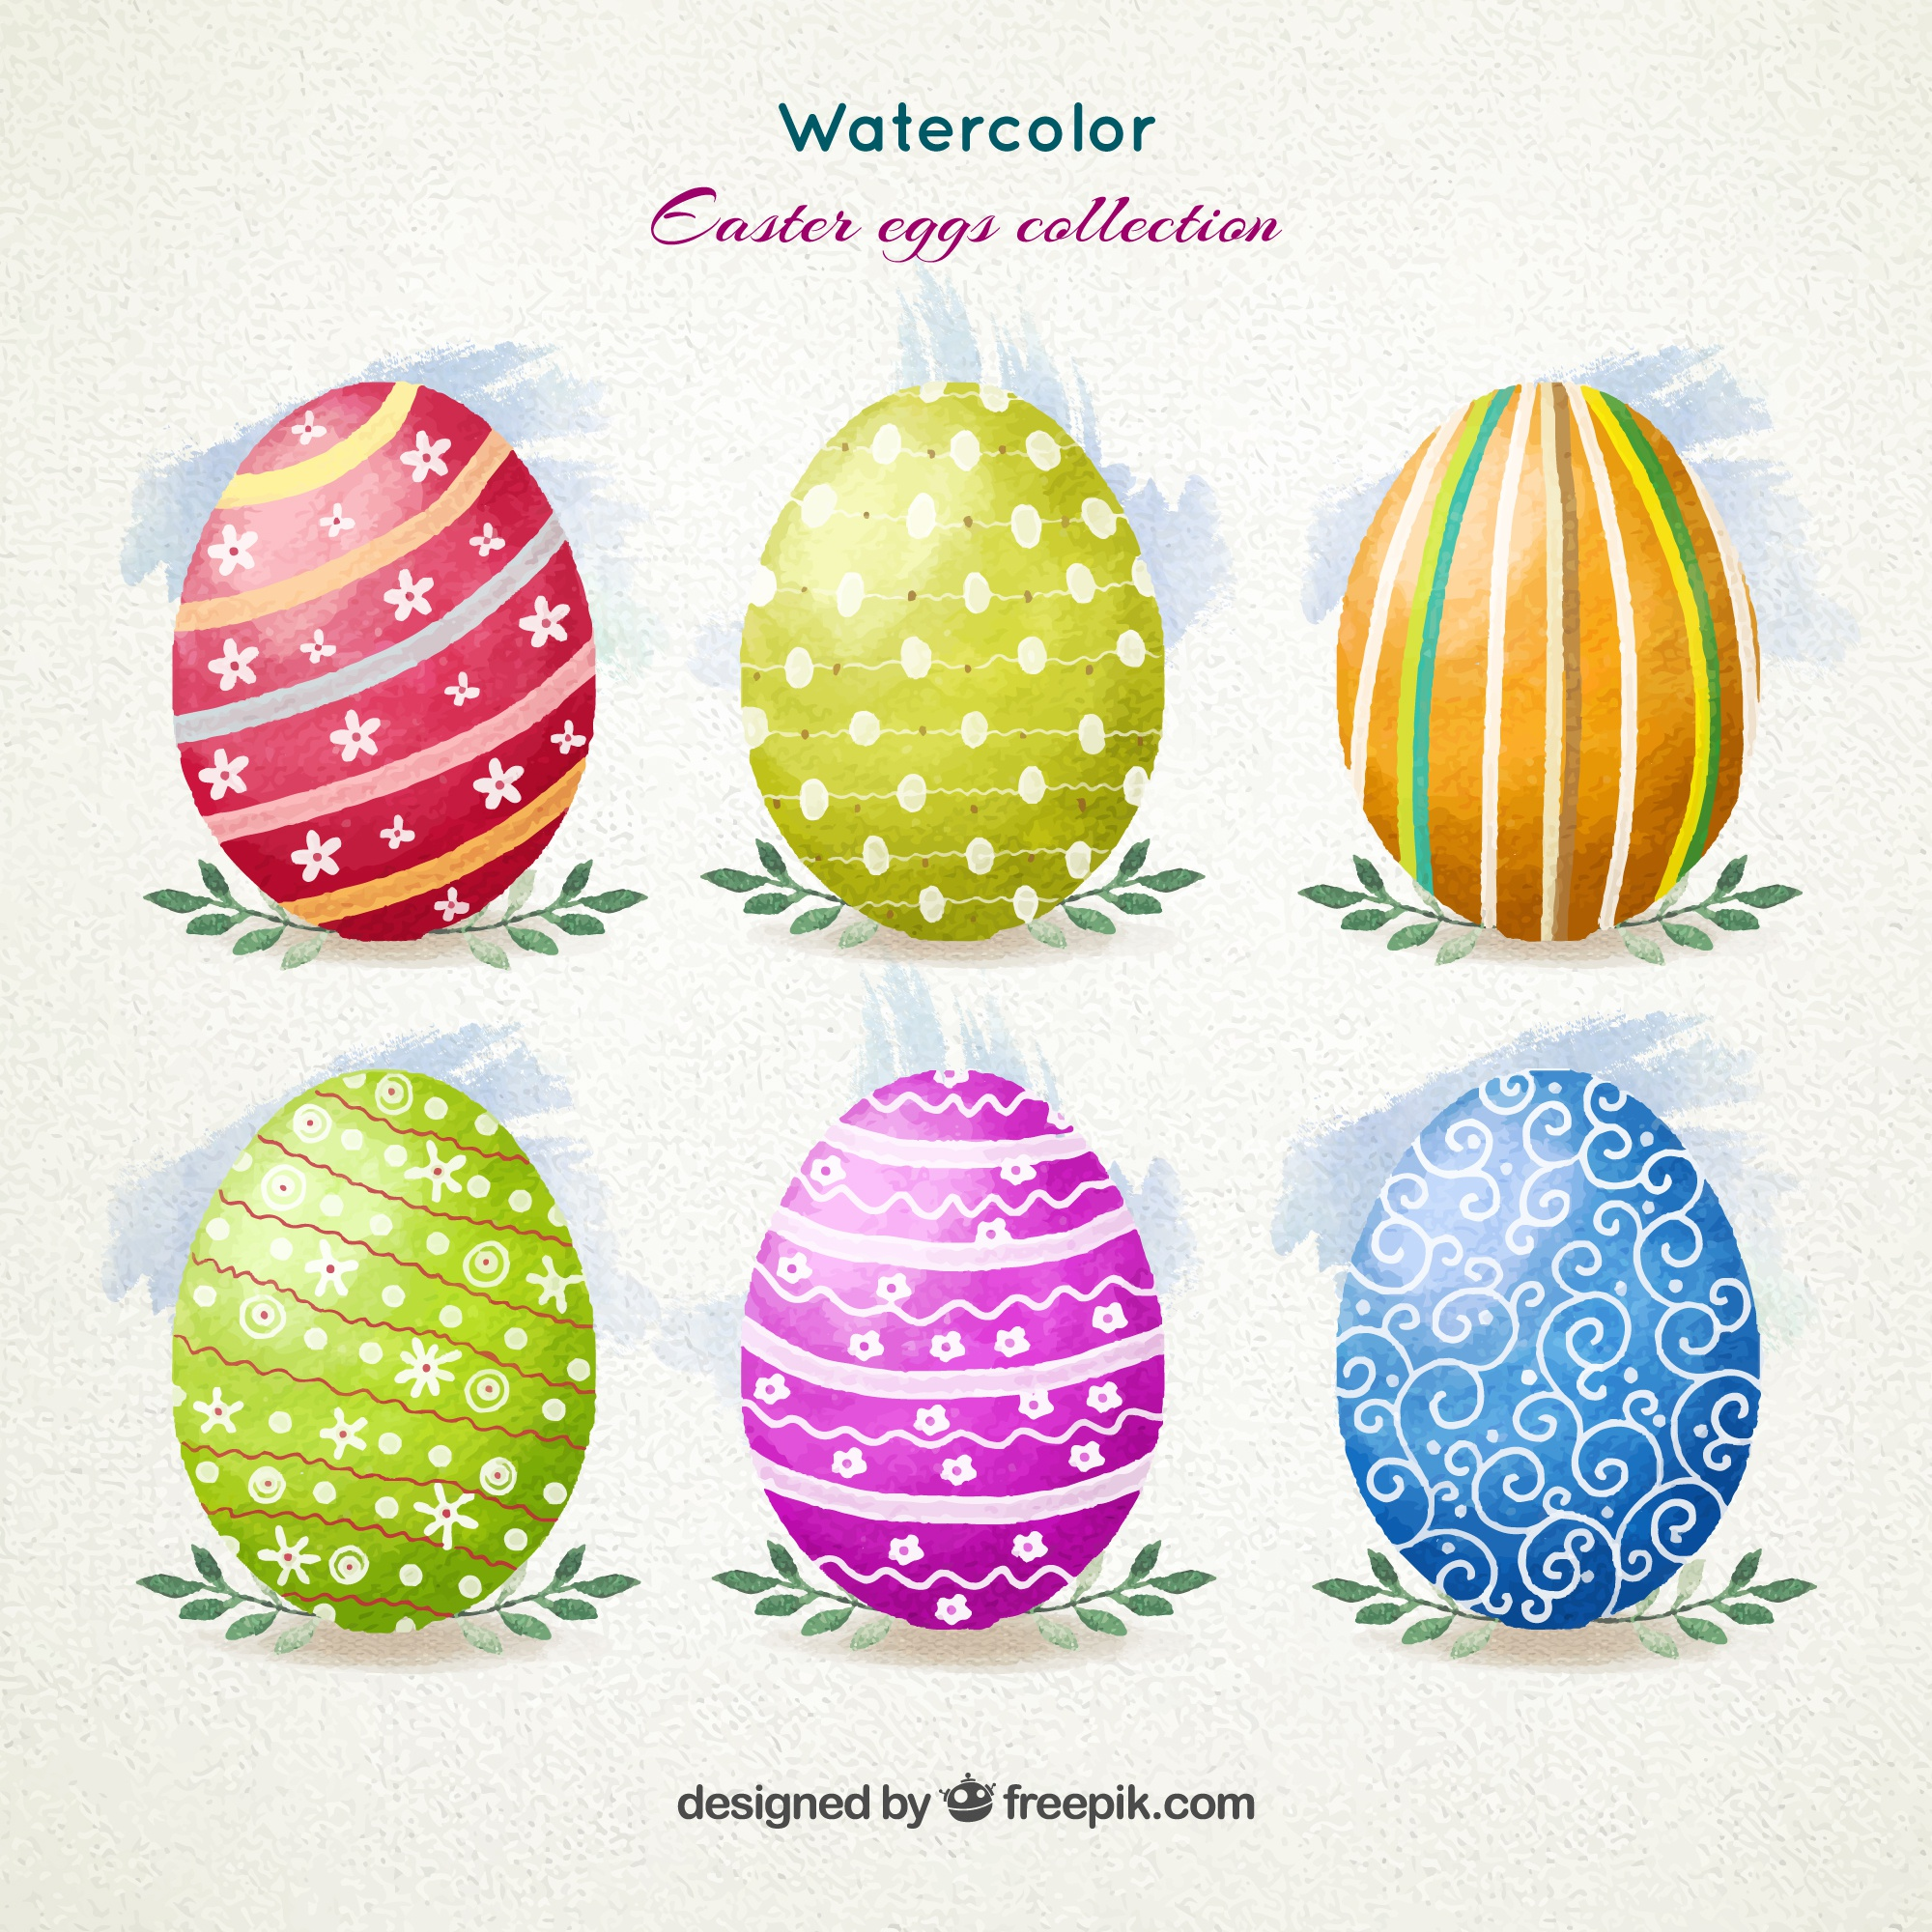 Watercolor ornamental Easter eggs